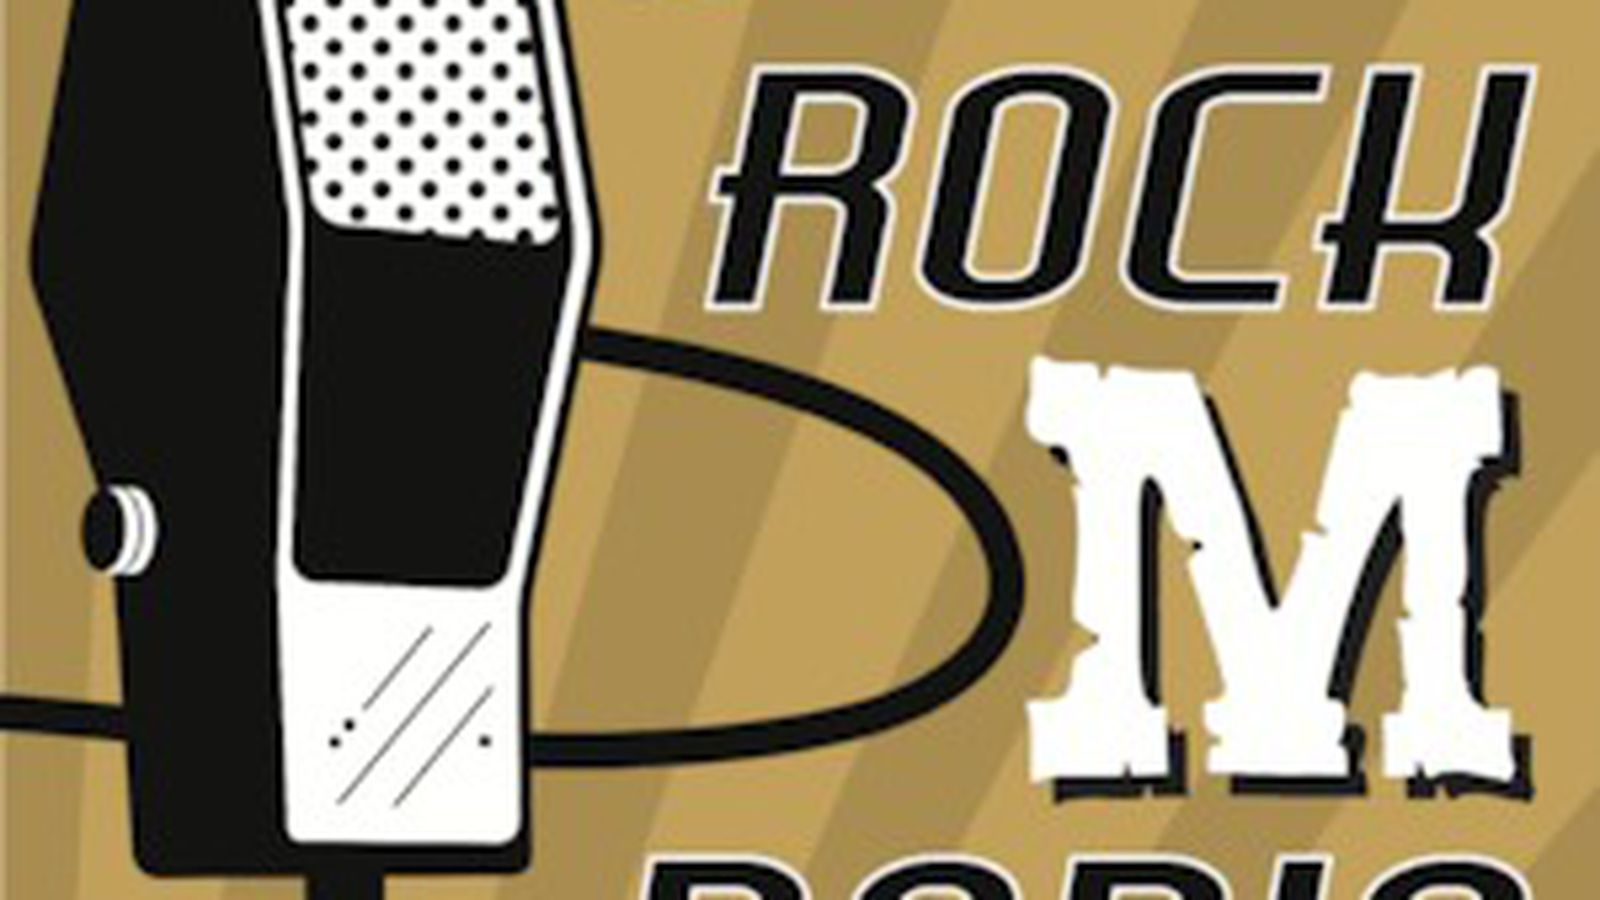 Rock_20m_20radio_20logo.0